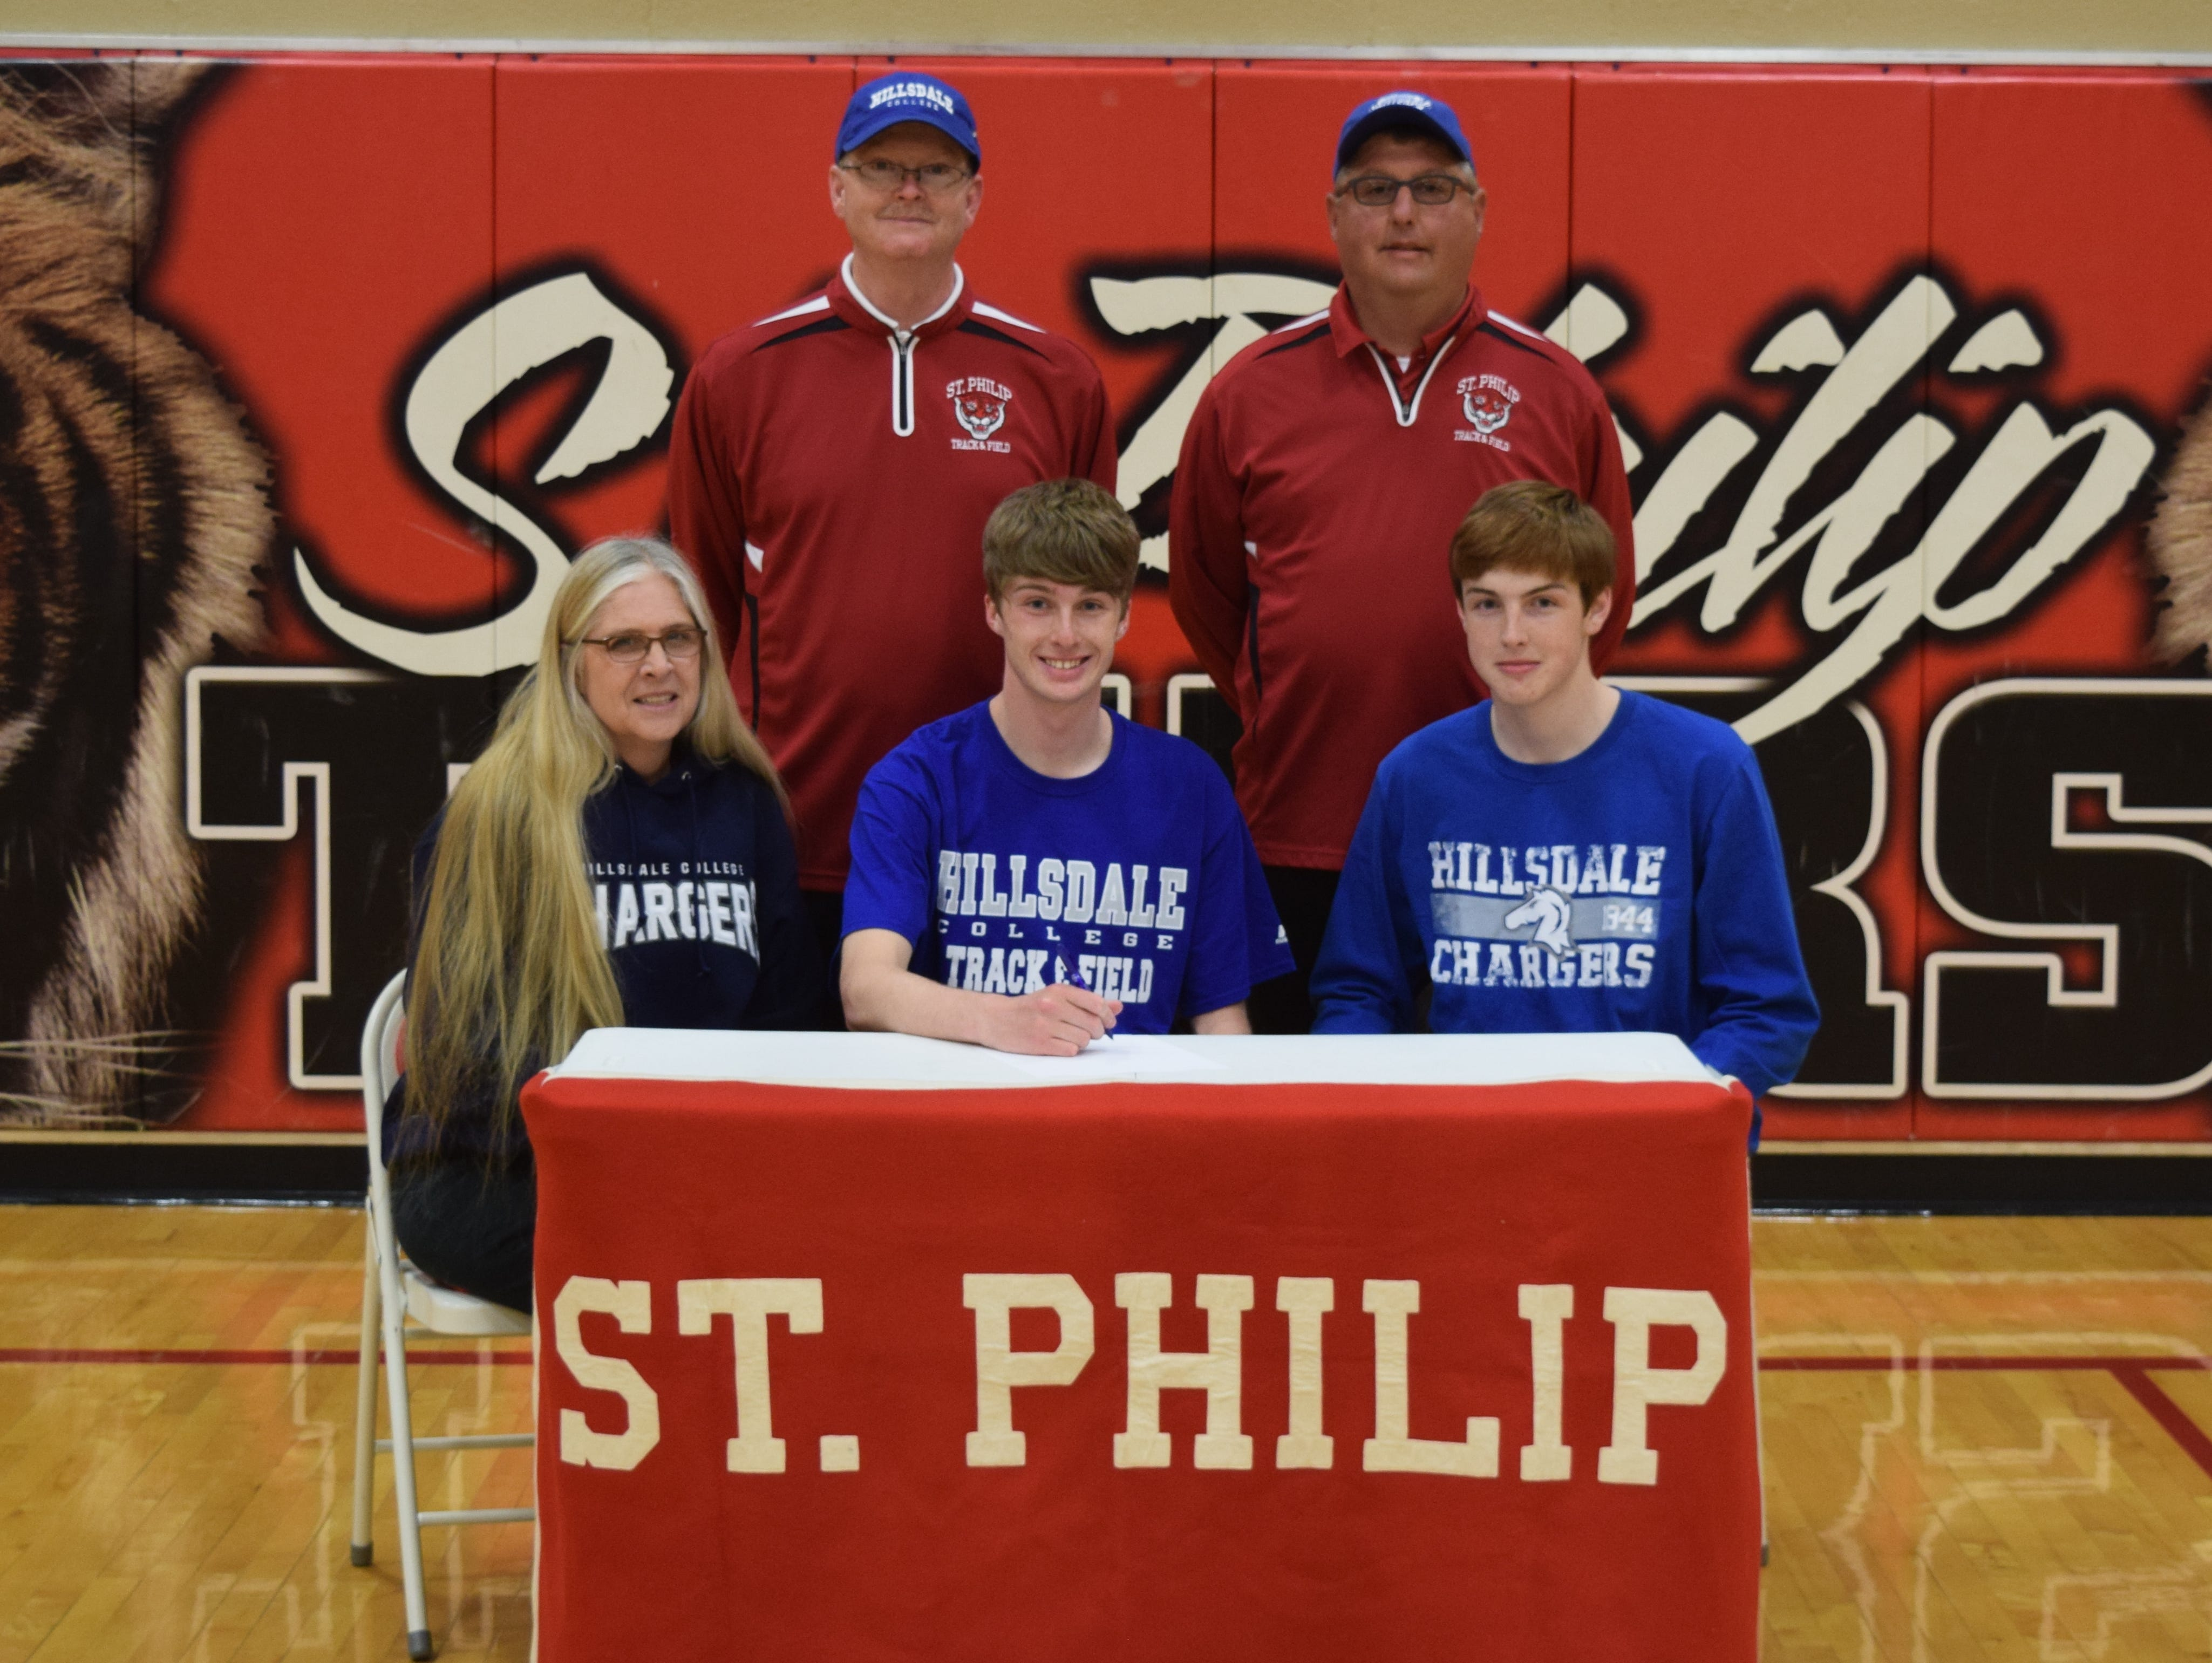 St. Philip senior David Downey signs his National Letter of Intent with the Hillsdale College men's track and field team, surrounded by parents Teresa Downey and Dave Downey, his brother JC Downey and St. Philip track coach Jeff Minier.